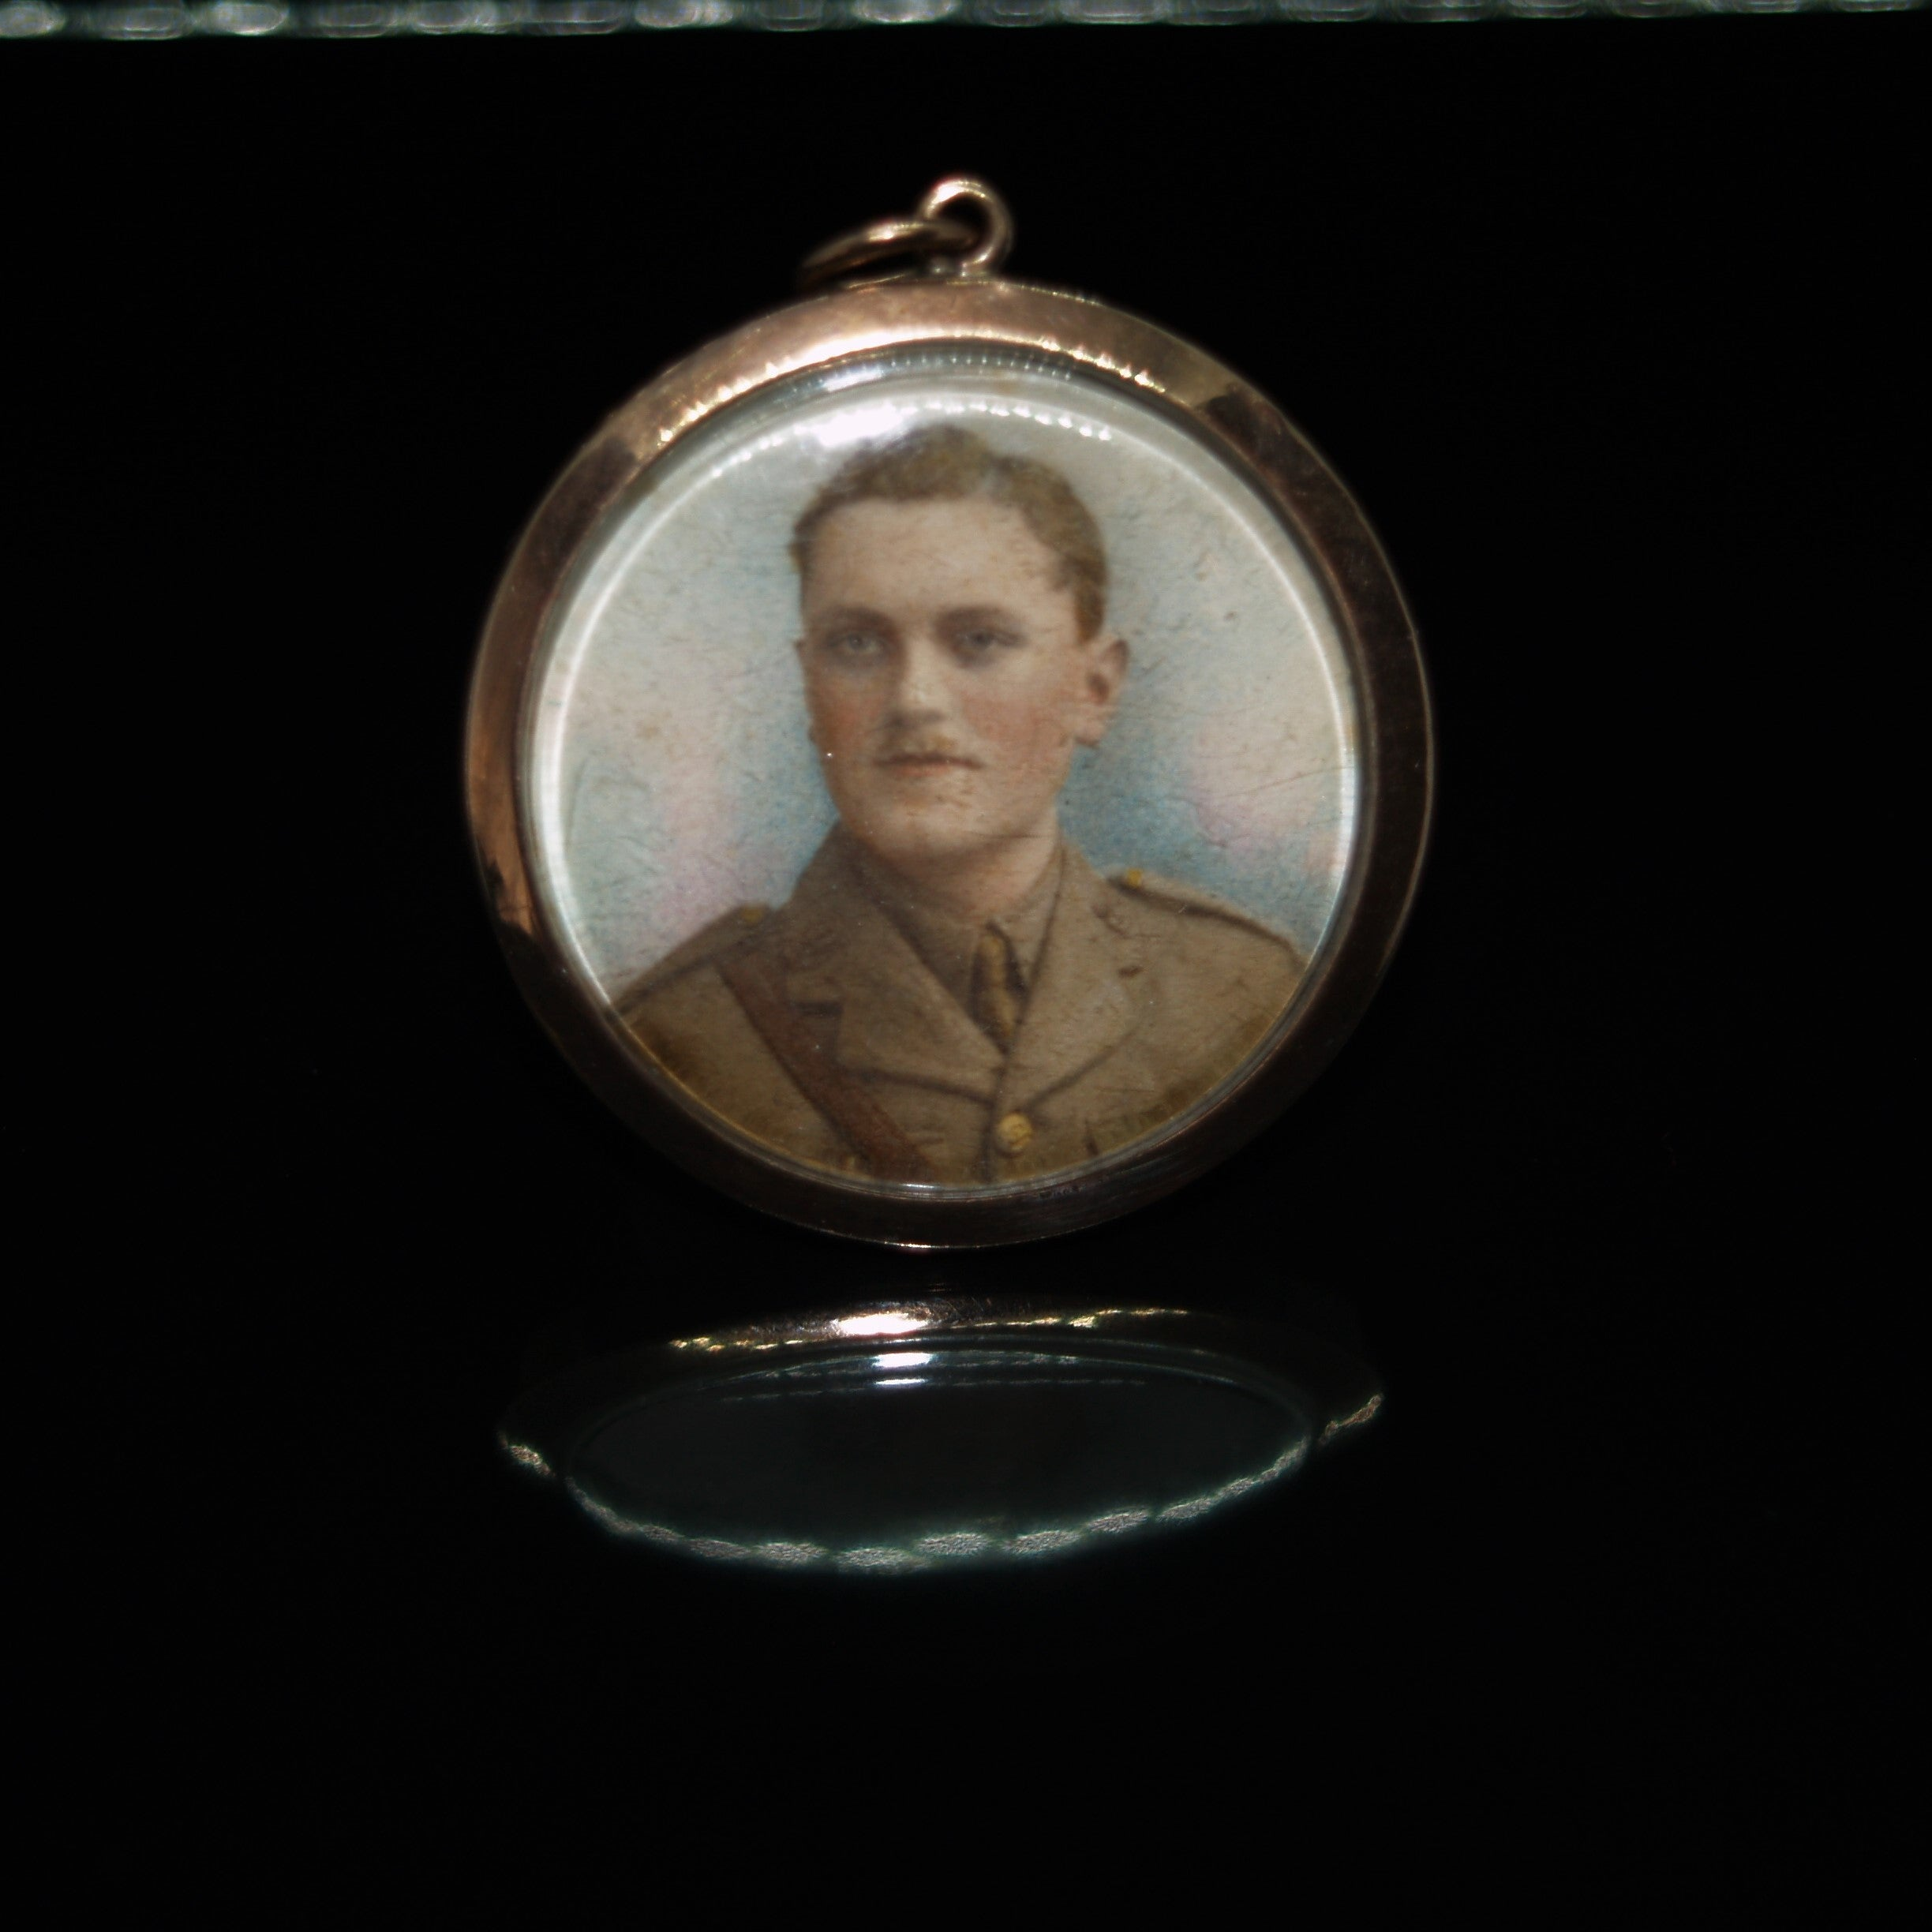 EARLY 20TH CENTURY 9CT GOLD HAND PAINTED MINIATURE PORTRAIT LOCKET.